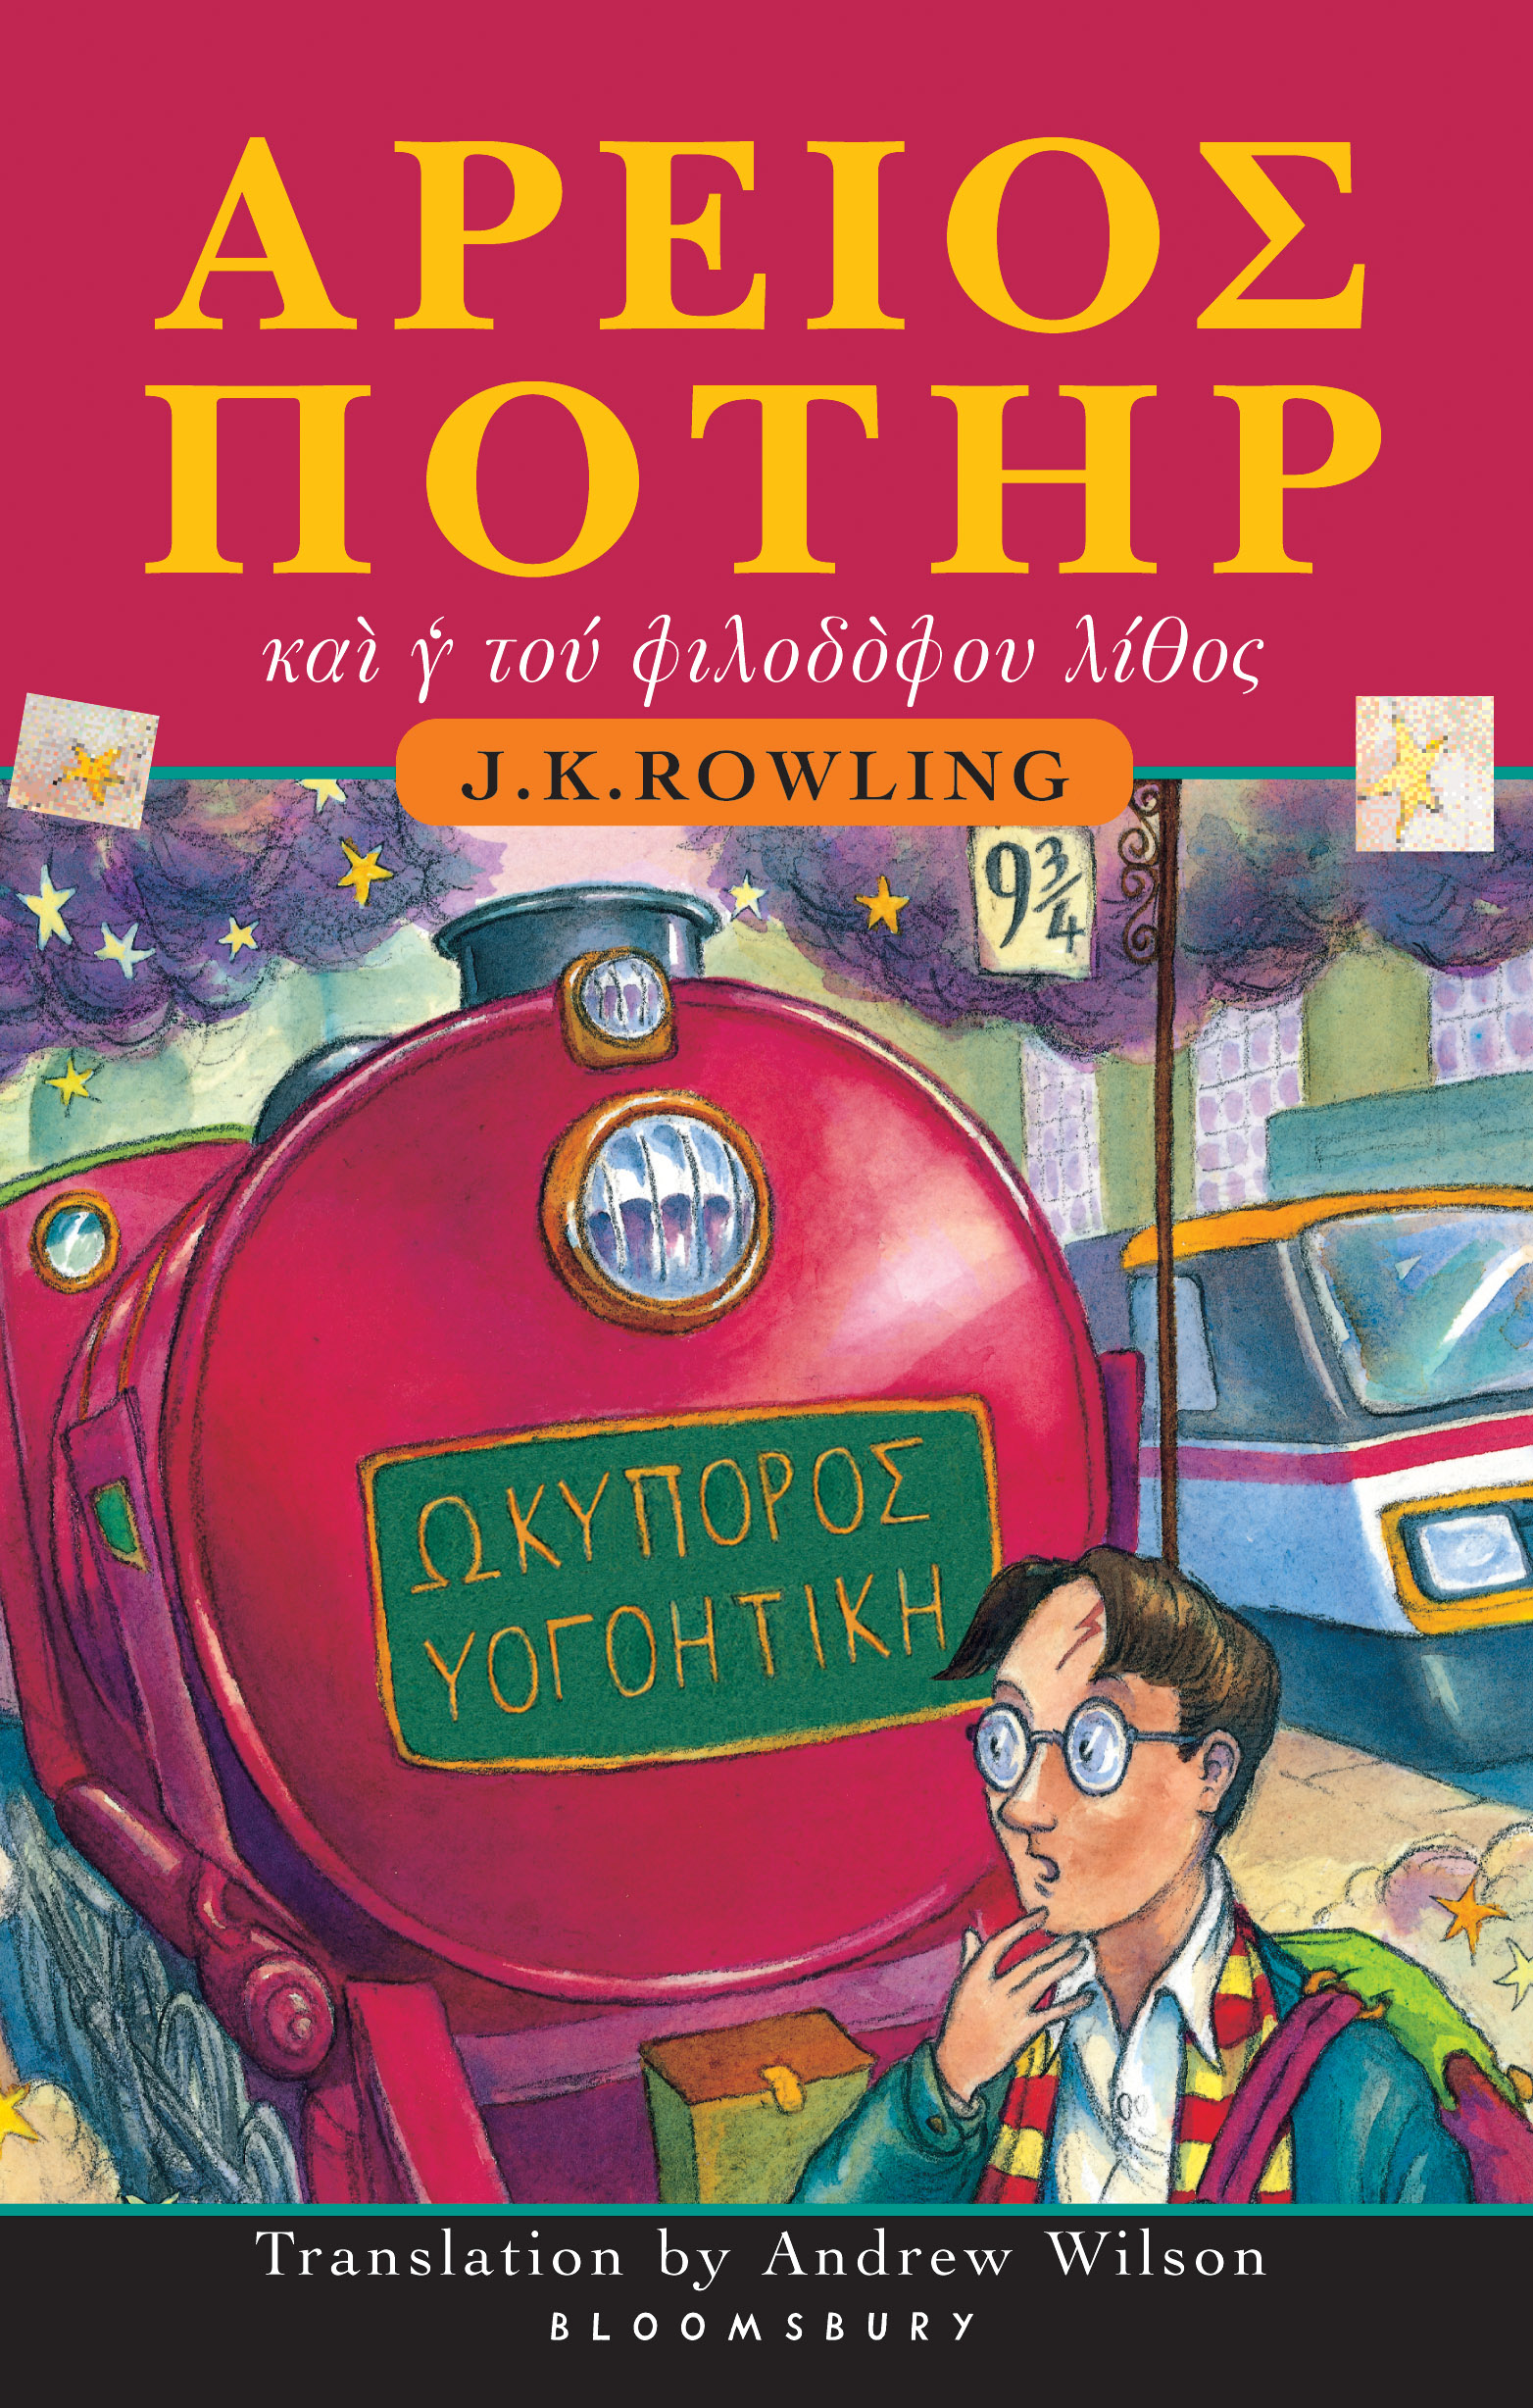 Harry Potter Philiosopher Stone (Ancient Greek Edition) by J.K. Rowling, ISBN: 9780747568971